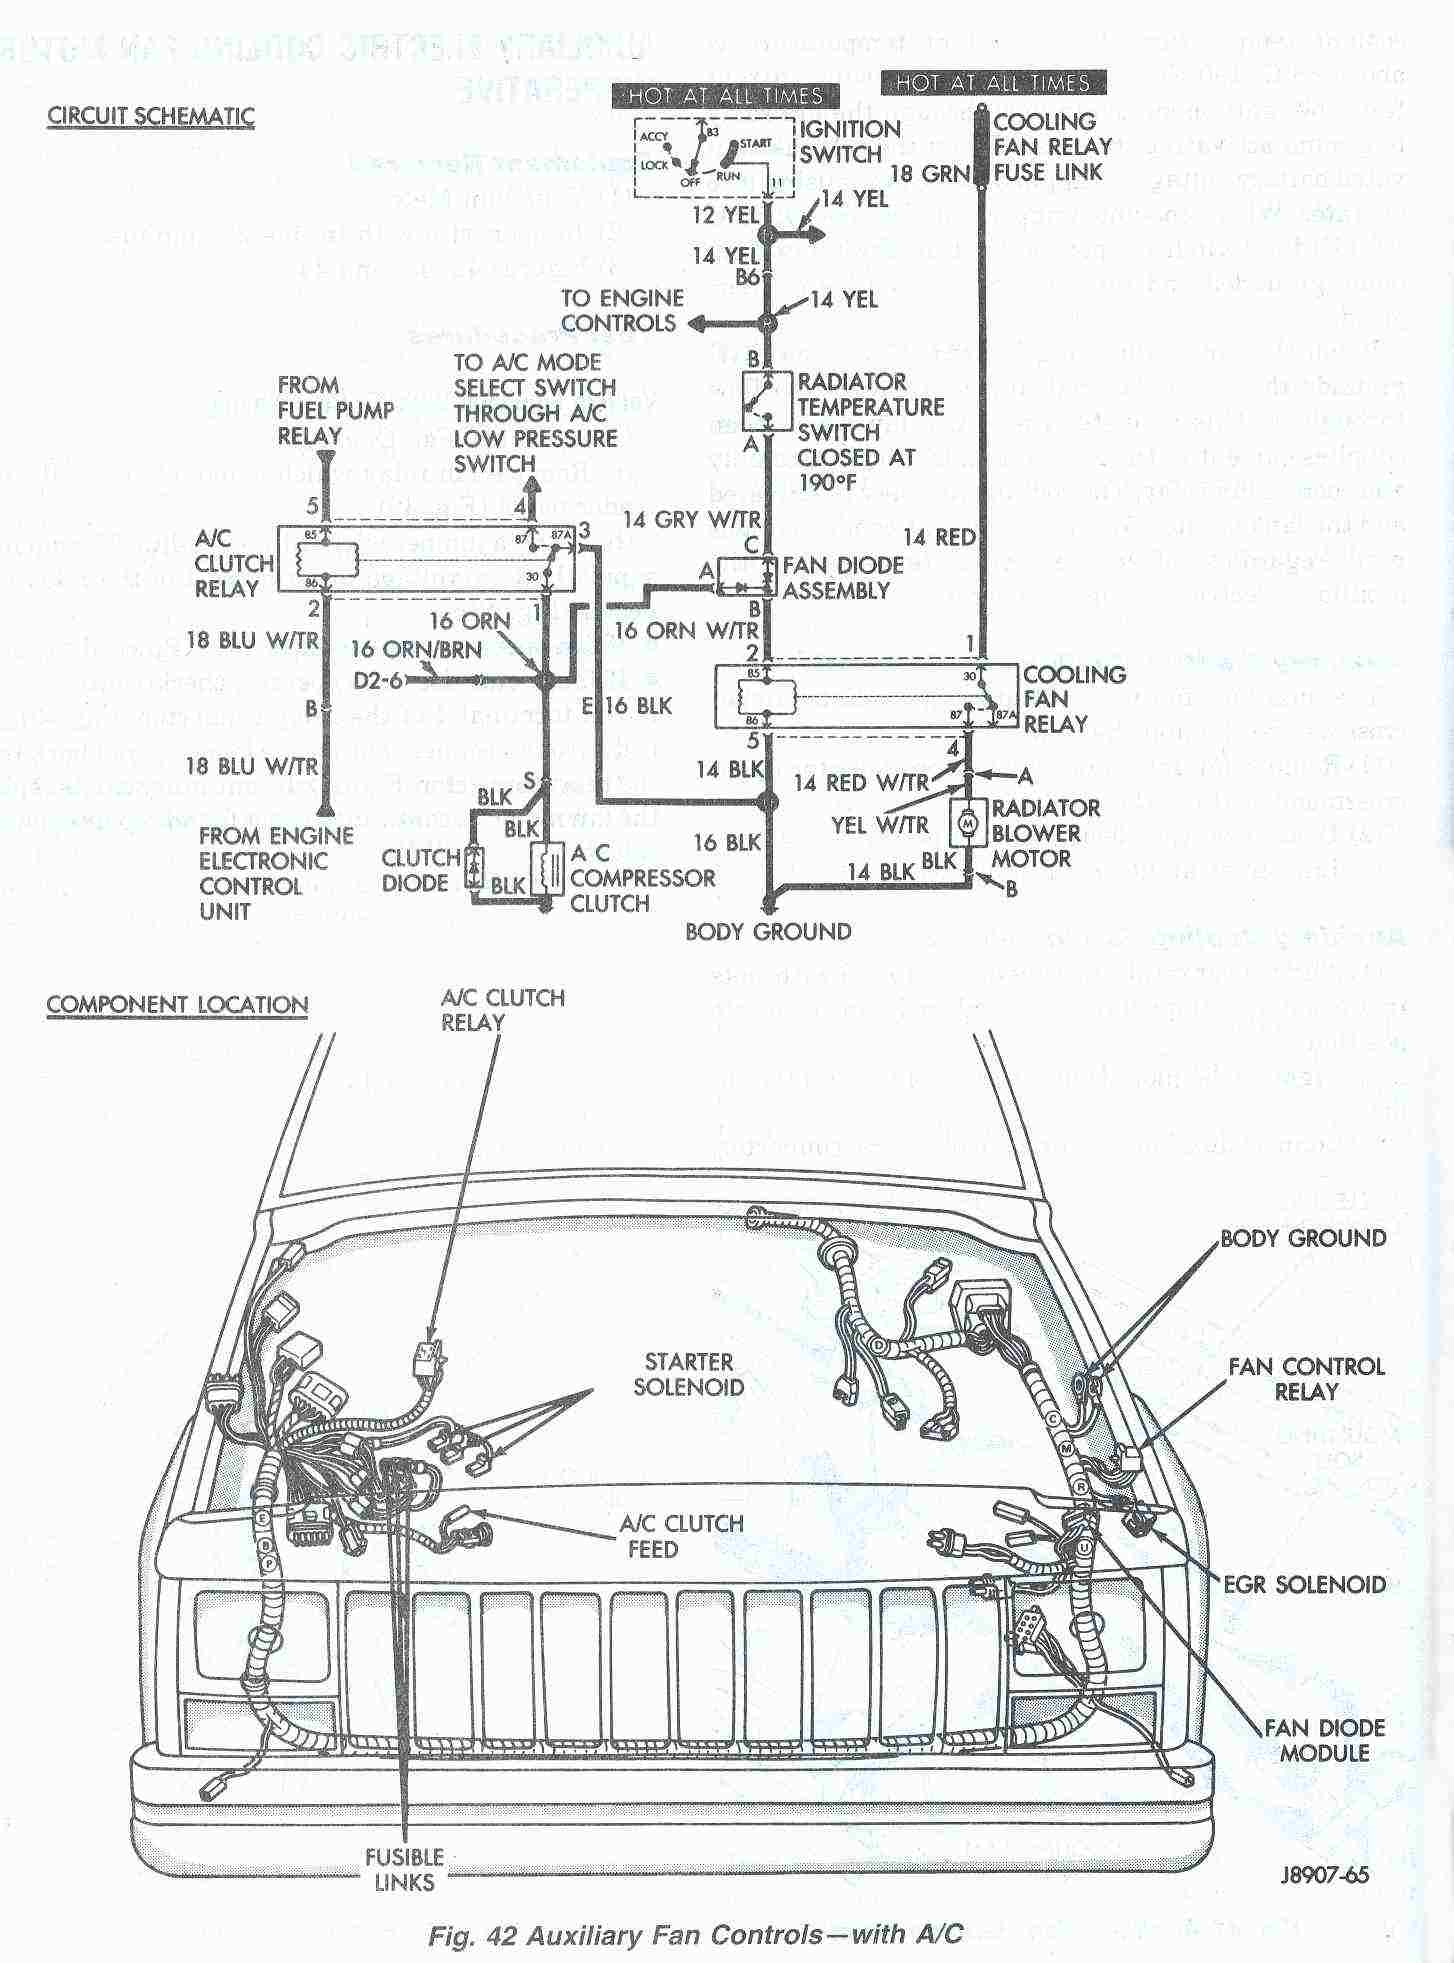 Jeep Cherokee Cooling System Electric Fan Troubleshooting Ac Wiring Test Procedures For Vehicle Equipped With Air Conditioning